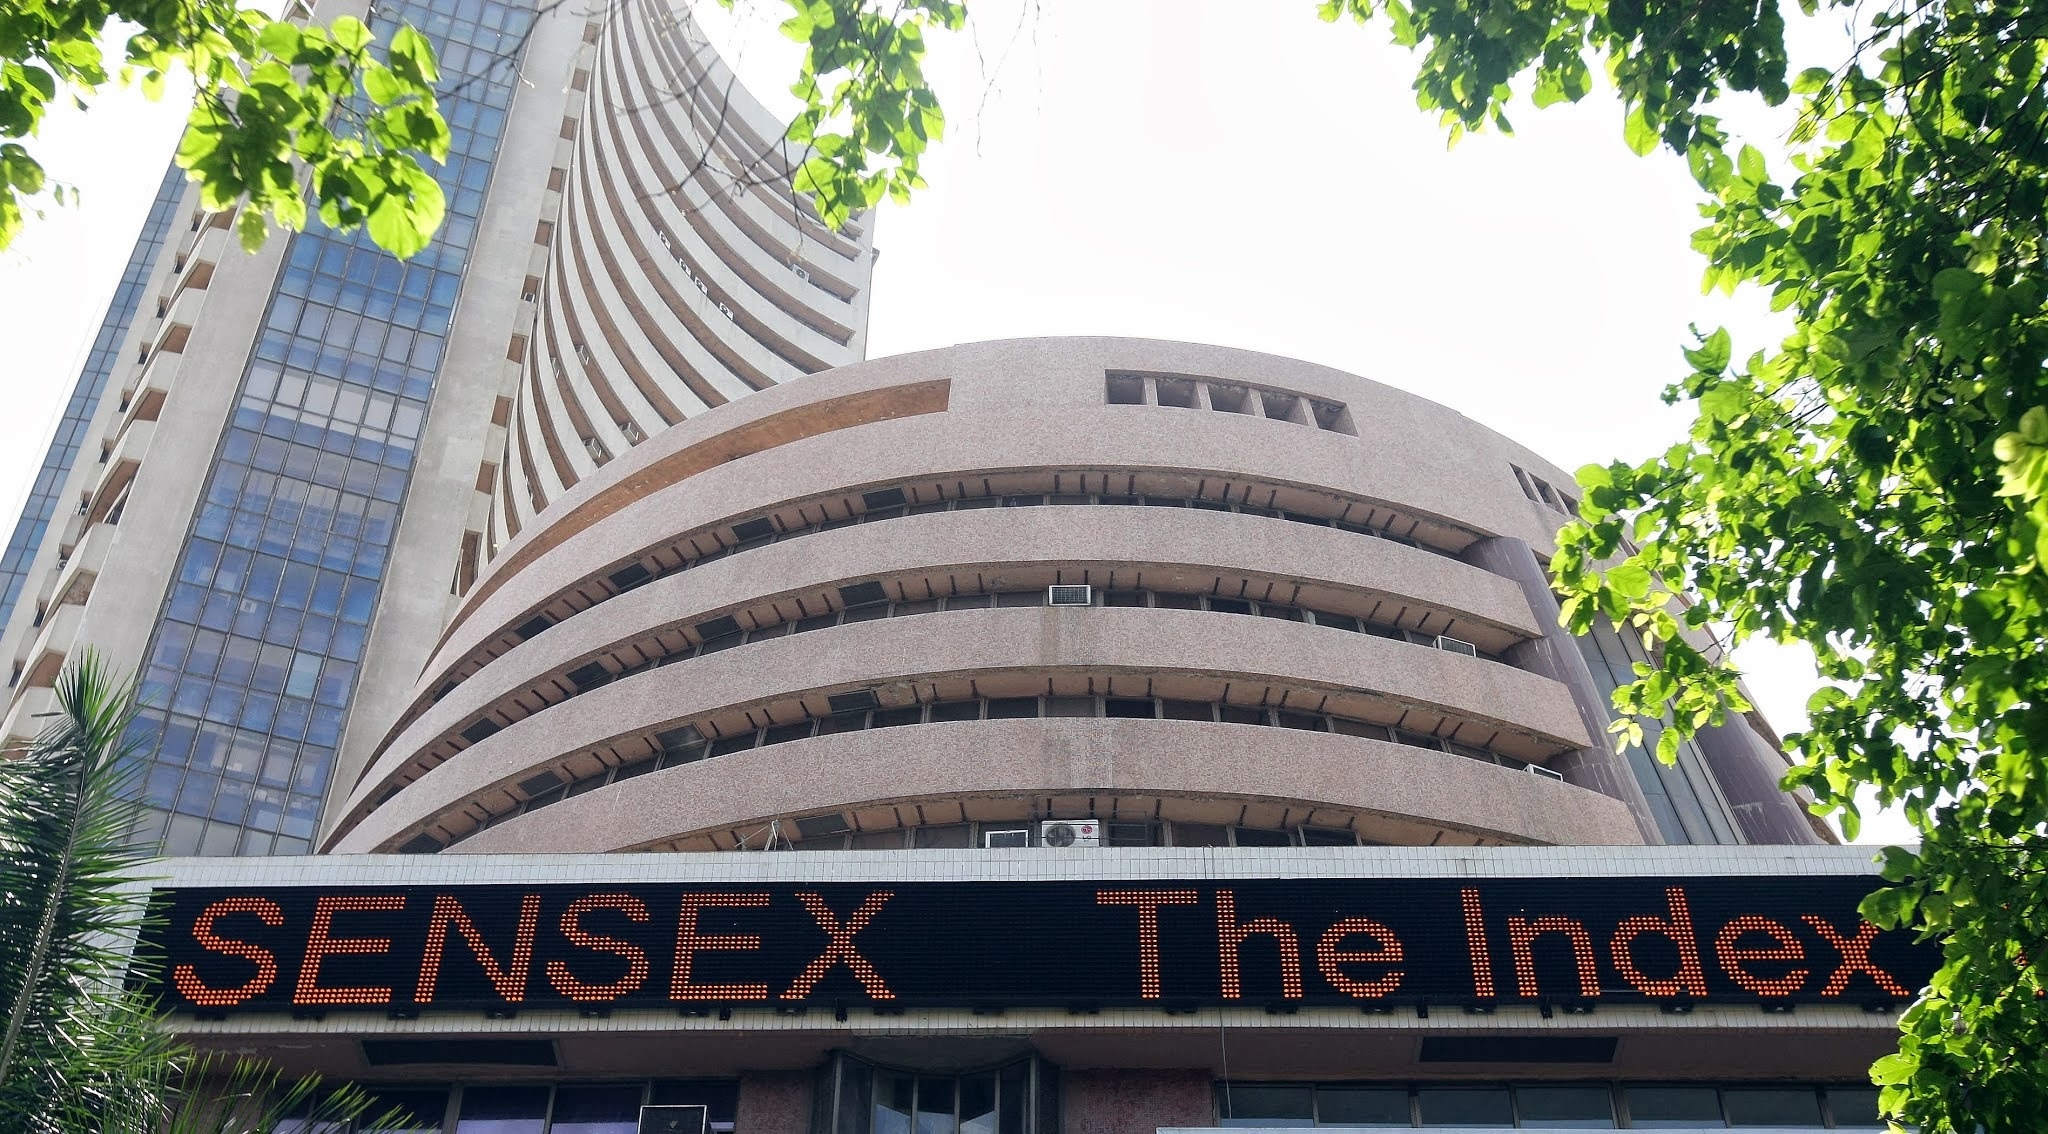 sensex open with 106 point gain sensex 111 point gain sensex closed 260 point stock market begins with gain sensex begins with gain sensex 56 point